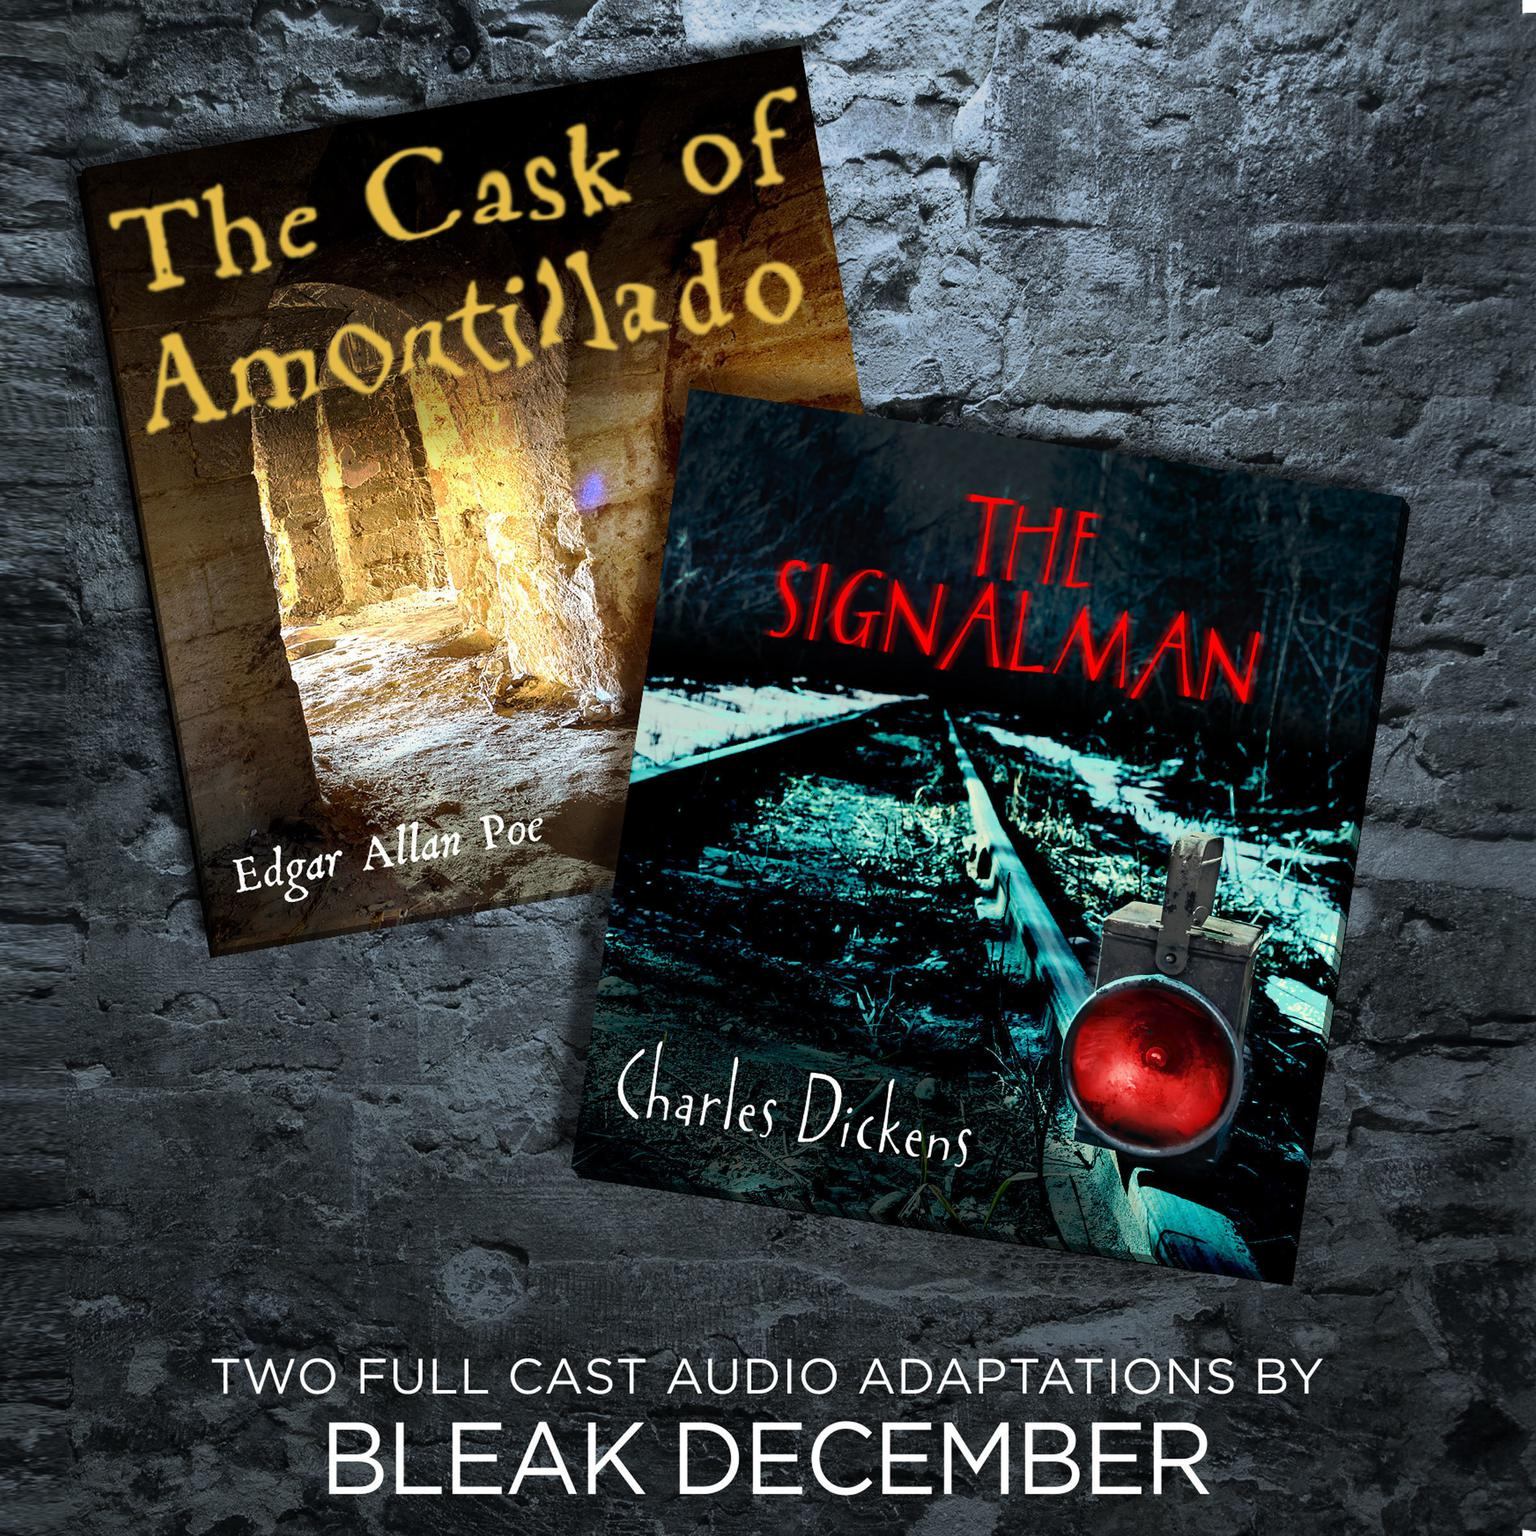 Printable The Signalman and The Cask of Amontillado: A Full-Cast Audio Drama Audiobook Cover Art